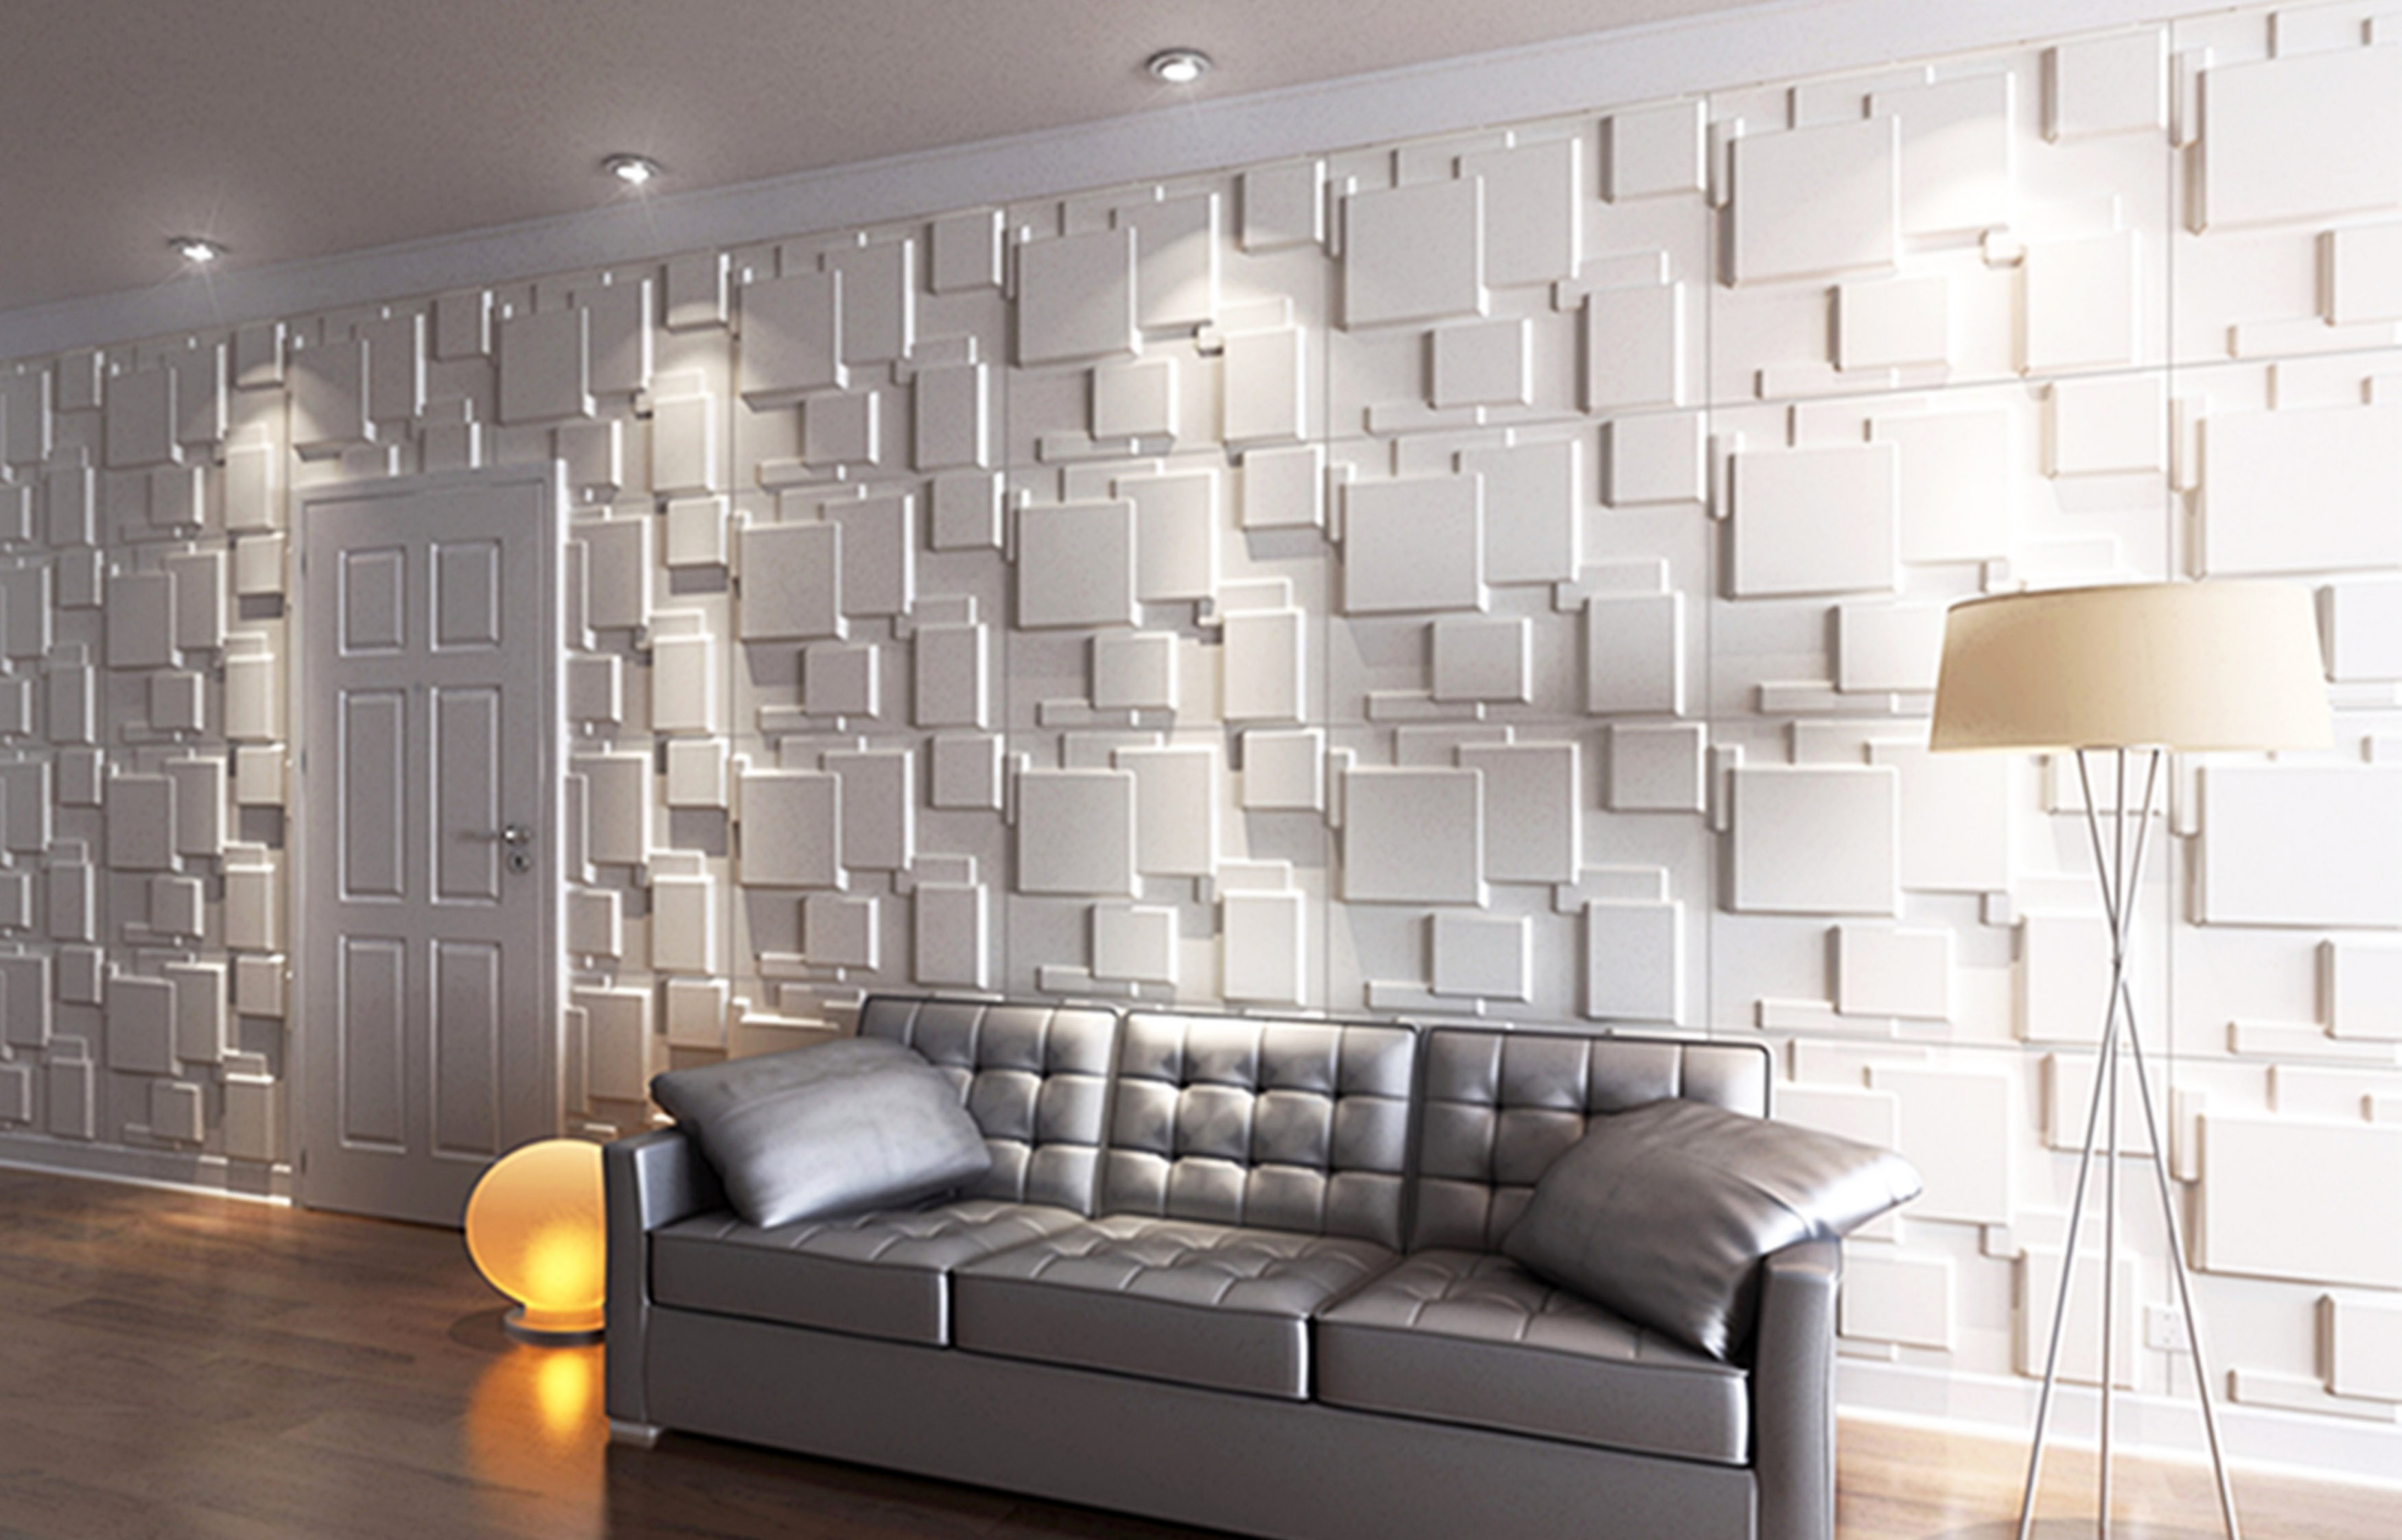 wall-covering-ideas-and-inspiration-interior-grey-vinyl-tufted-three-seat-modern-couch-and-white-painted-3d-wall-panels-in-living-room-decorative-covering-design-ideas